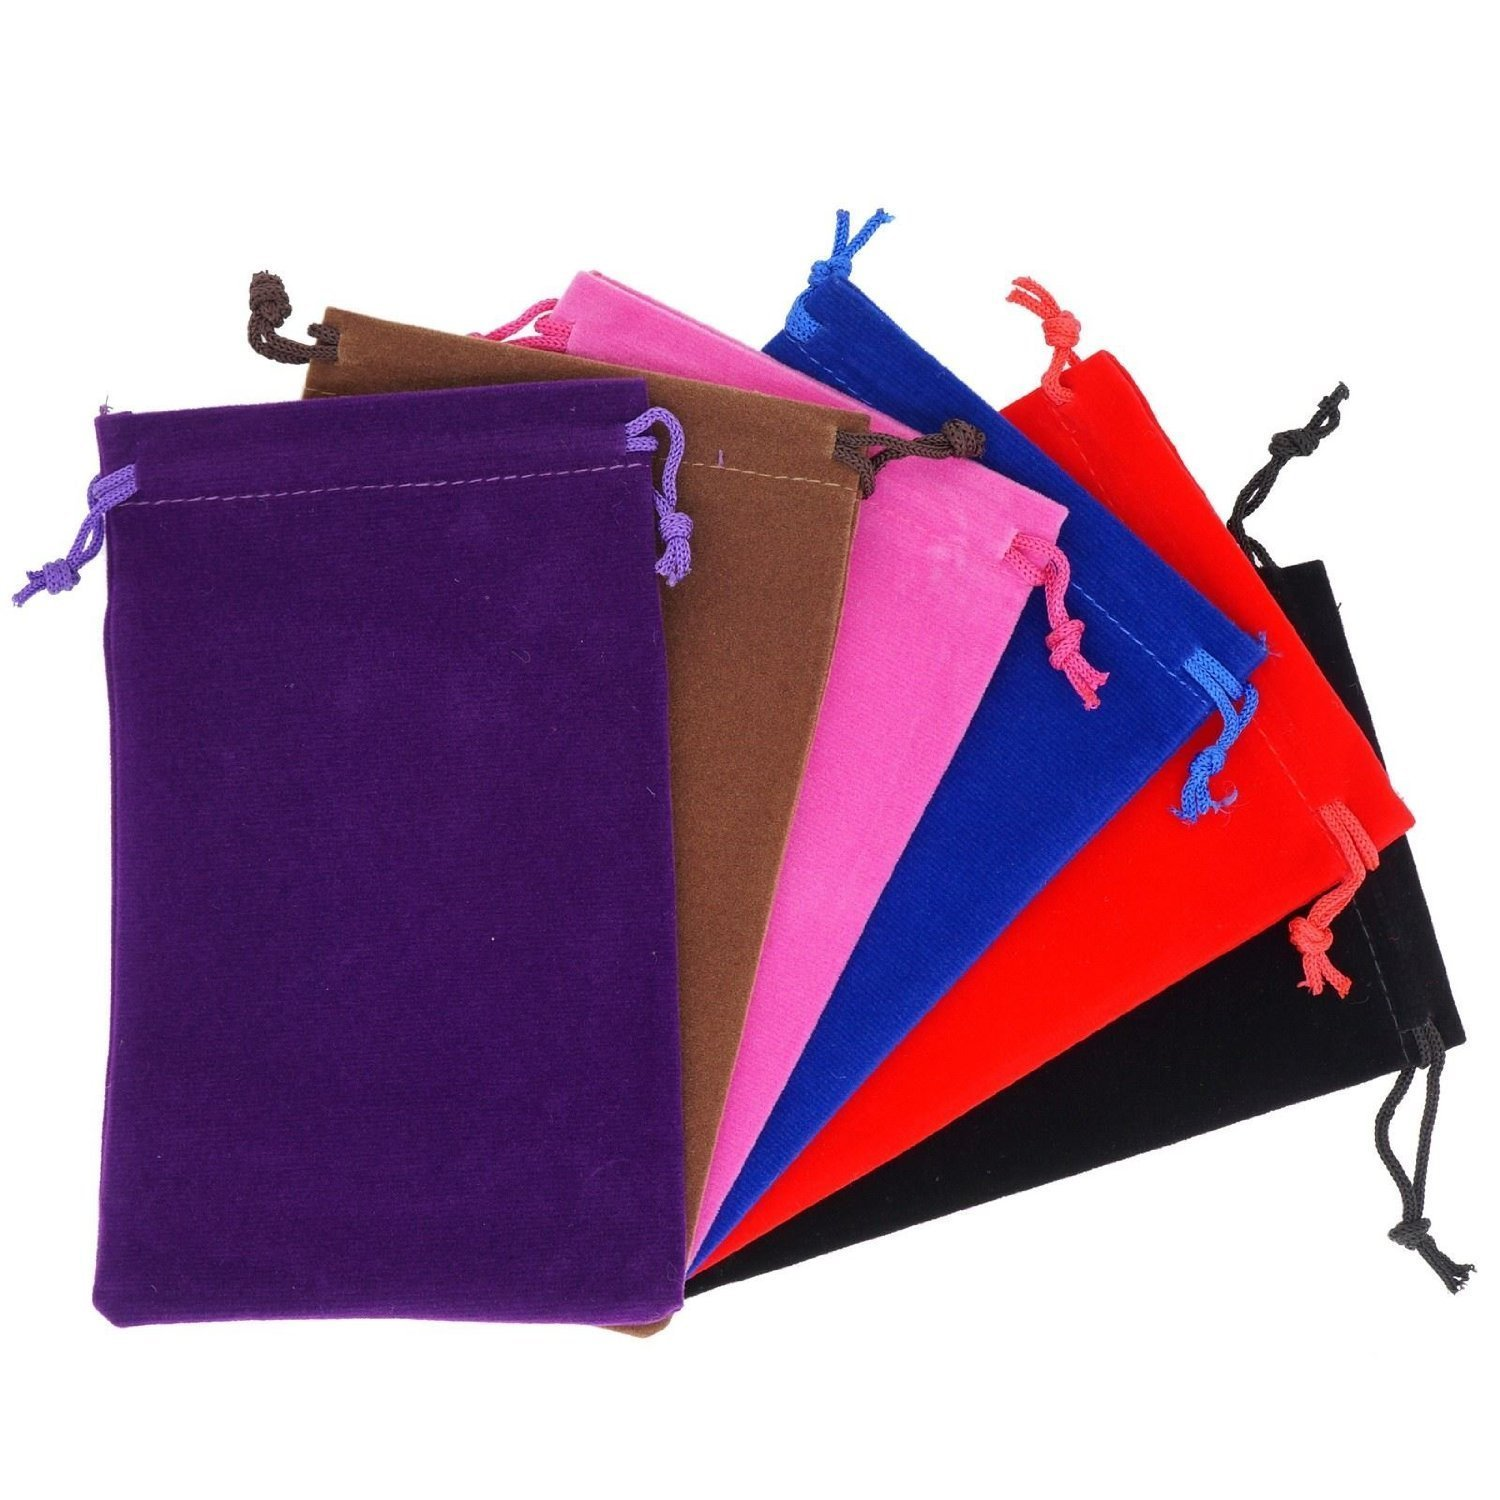 Pack of 10pcs 10x16cm Velvet Drawstring Cloth Jewelry / Gift / Headphones Bag / Pouches Good done